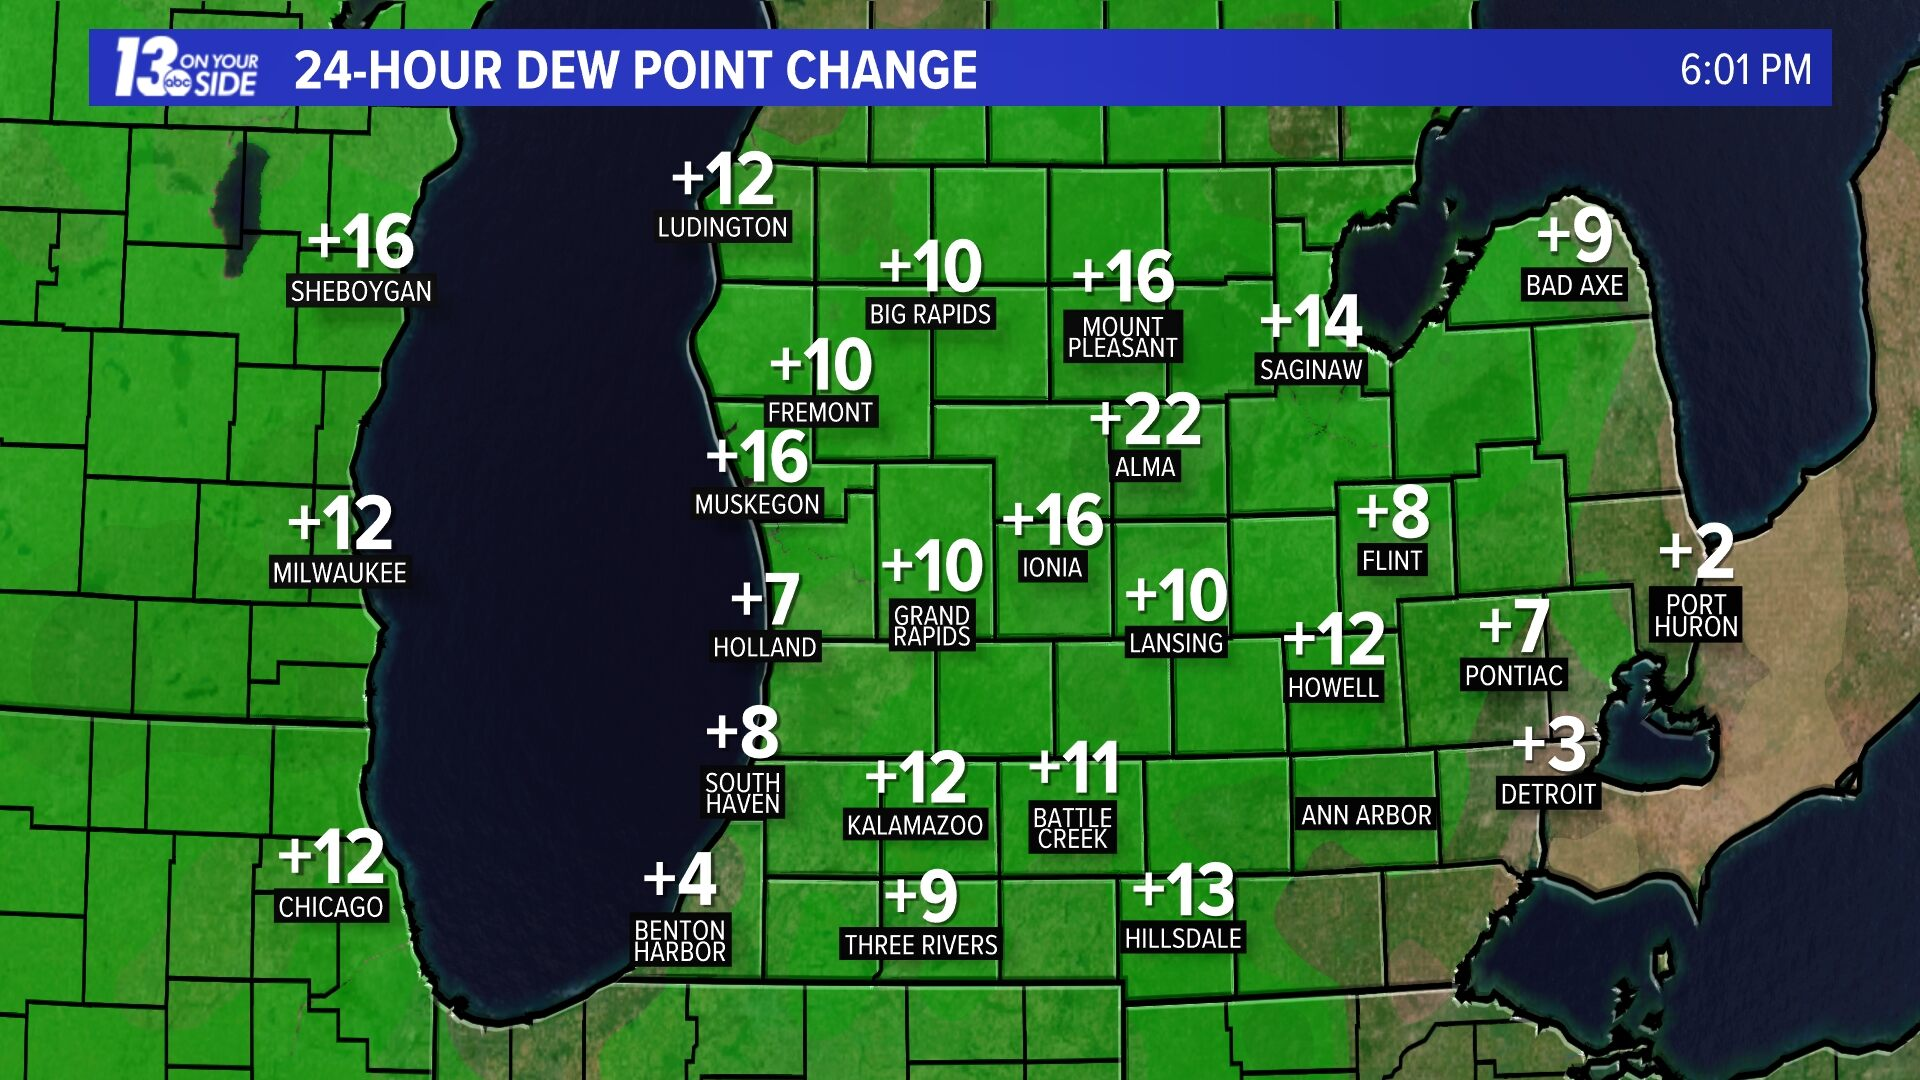 24 Hour Dewpoint Change